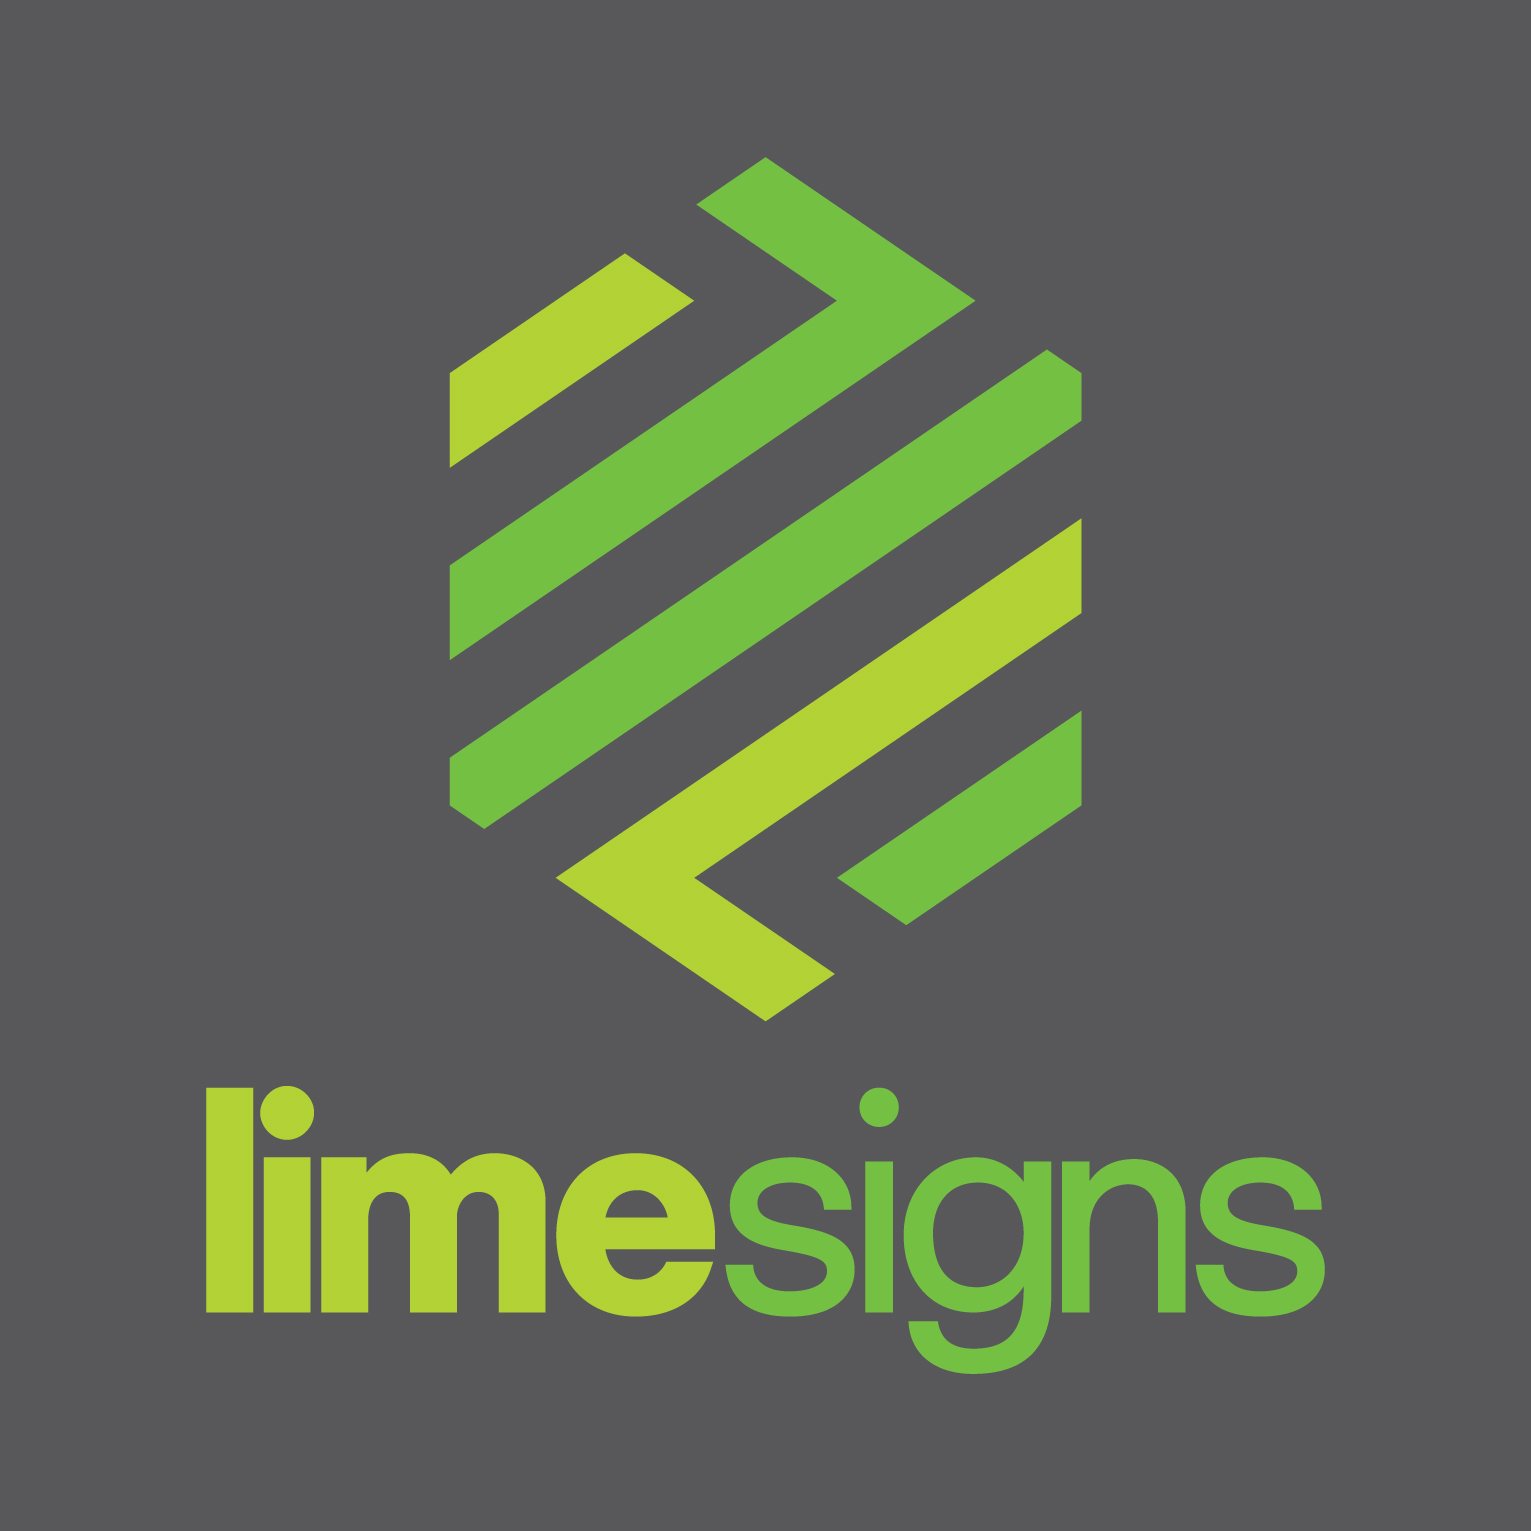 New branding for Limesigns